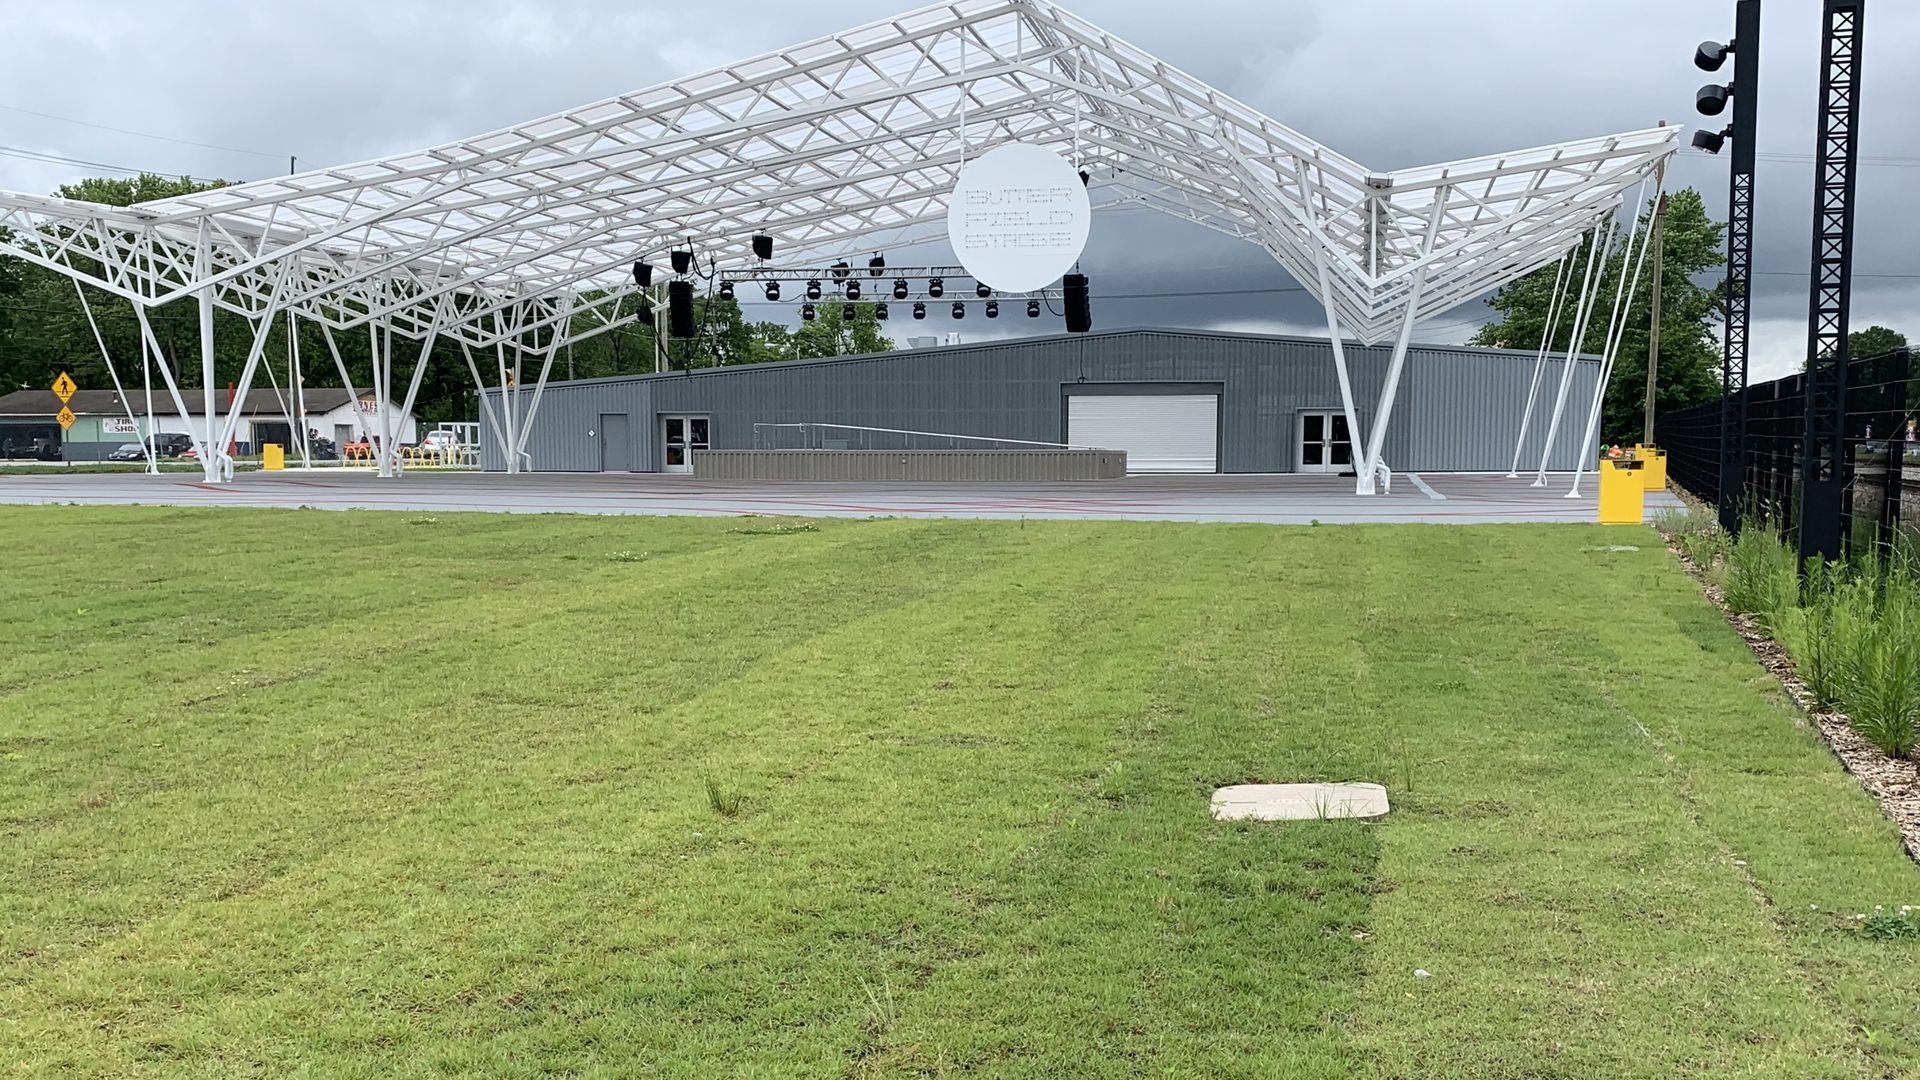 The new outdoor Butterfield Stage in Rogers is surrounded by grass